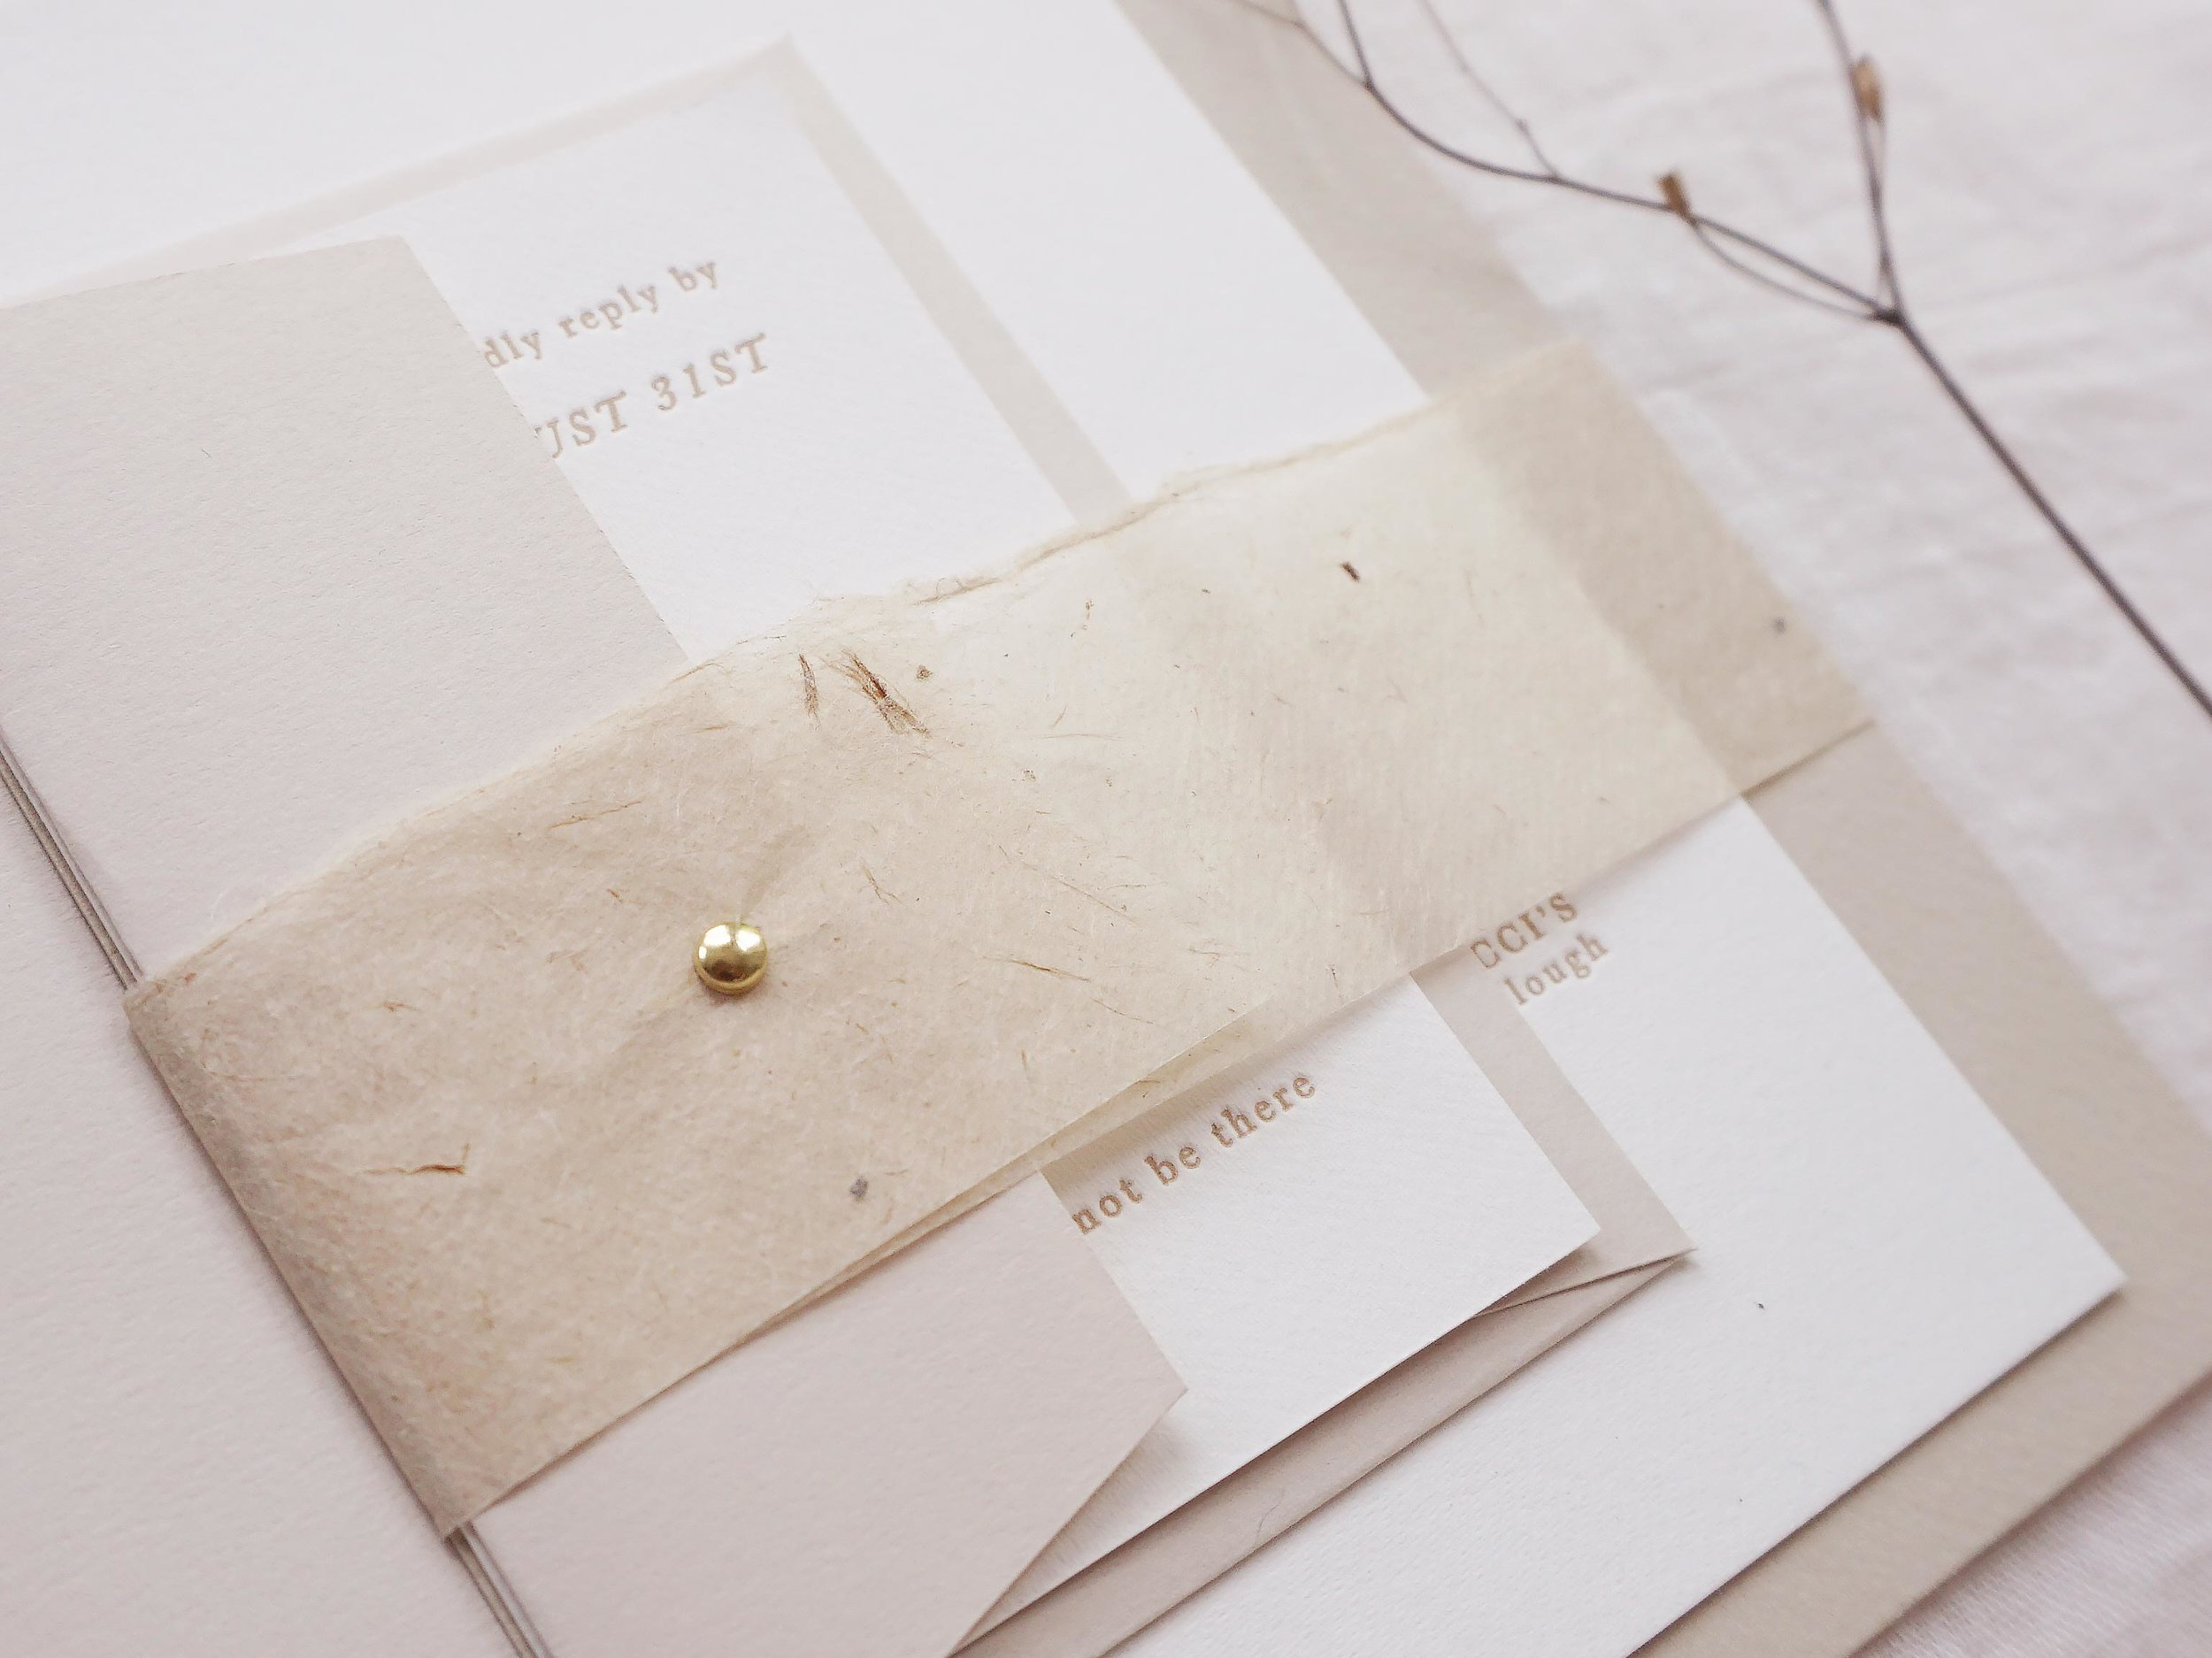 gold-brad-tissue-handmade-organic-natural-letterpress-invitations